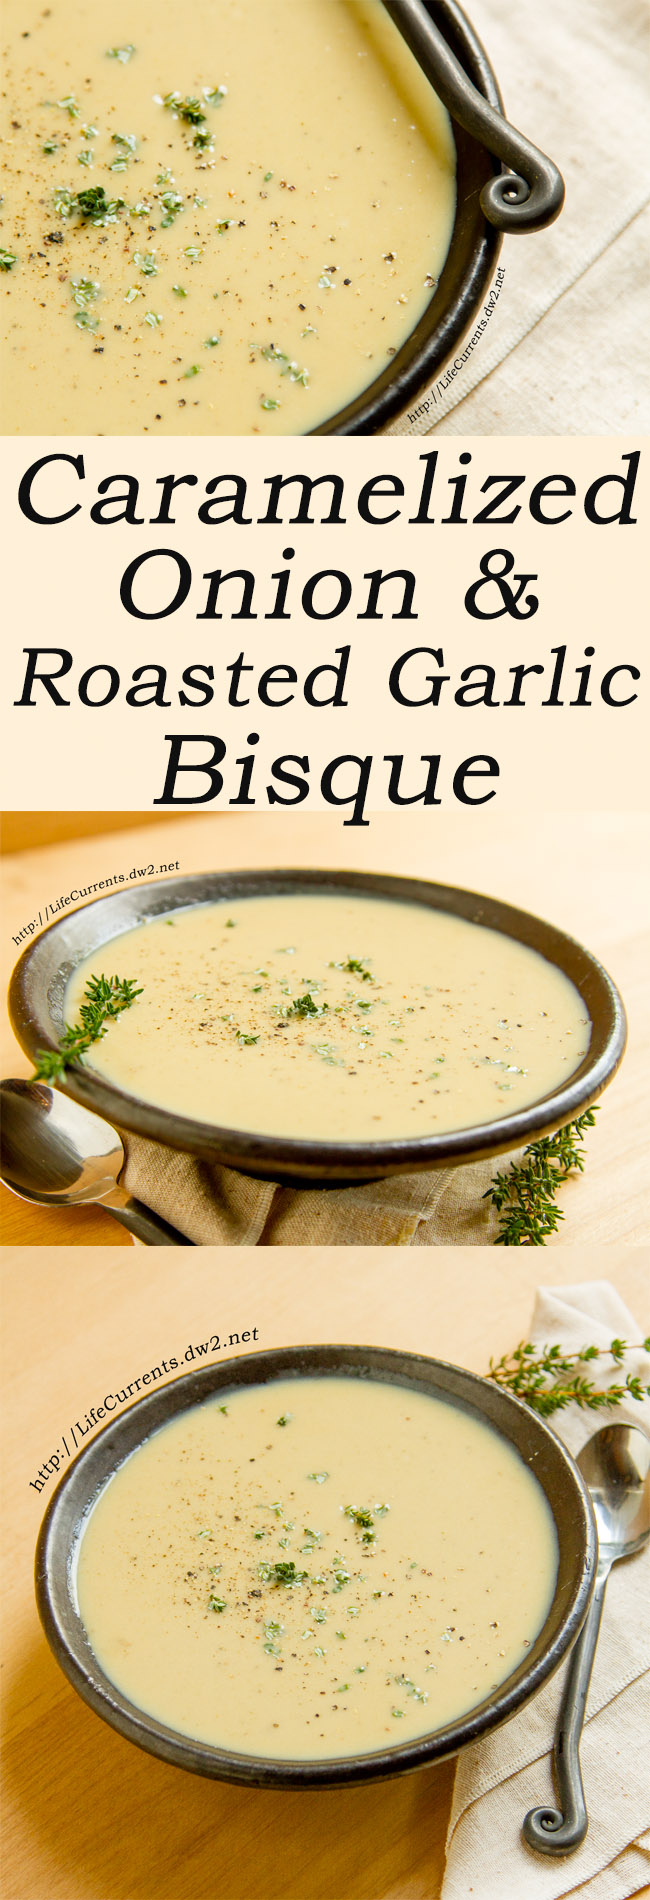 Caramelized Onion Roasted Garlic Bisque #soup #garlic #comfortfood